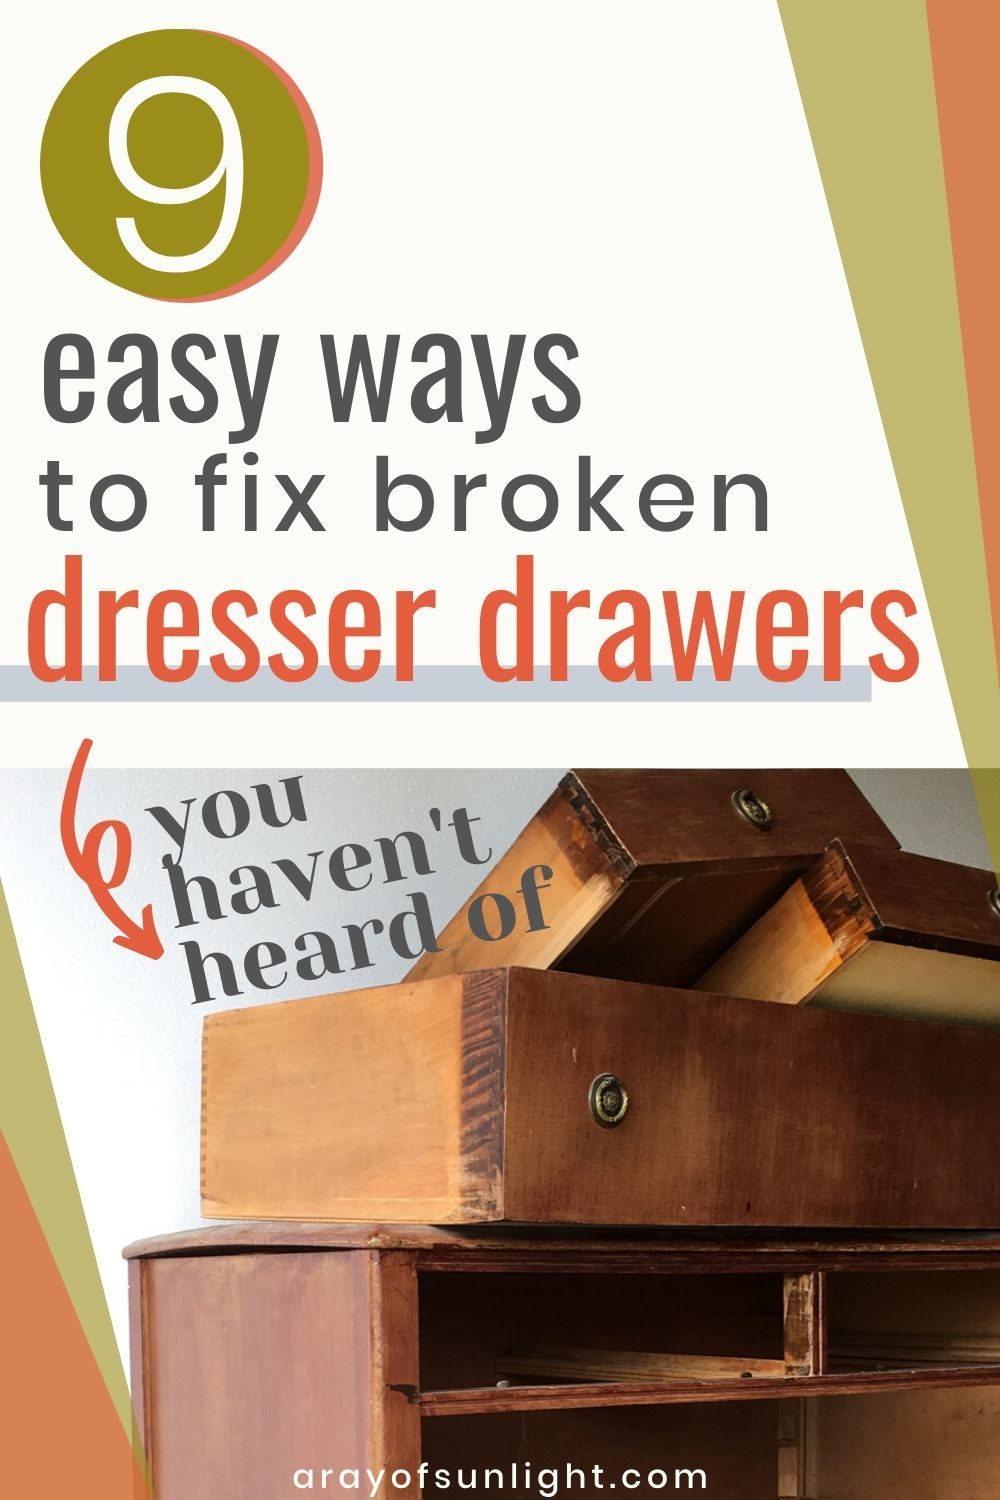 How To Fix Old Dresser Drawers That Stick Old Dresser Drawers Dresser Drawers Furniture Repair